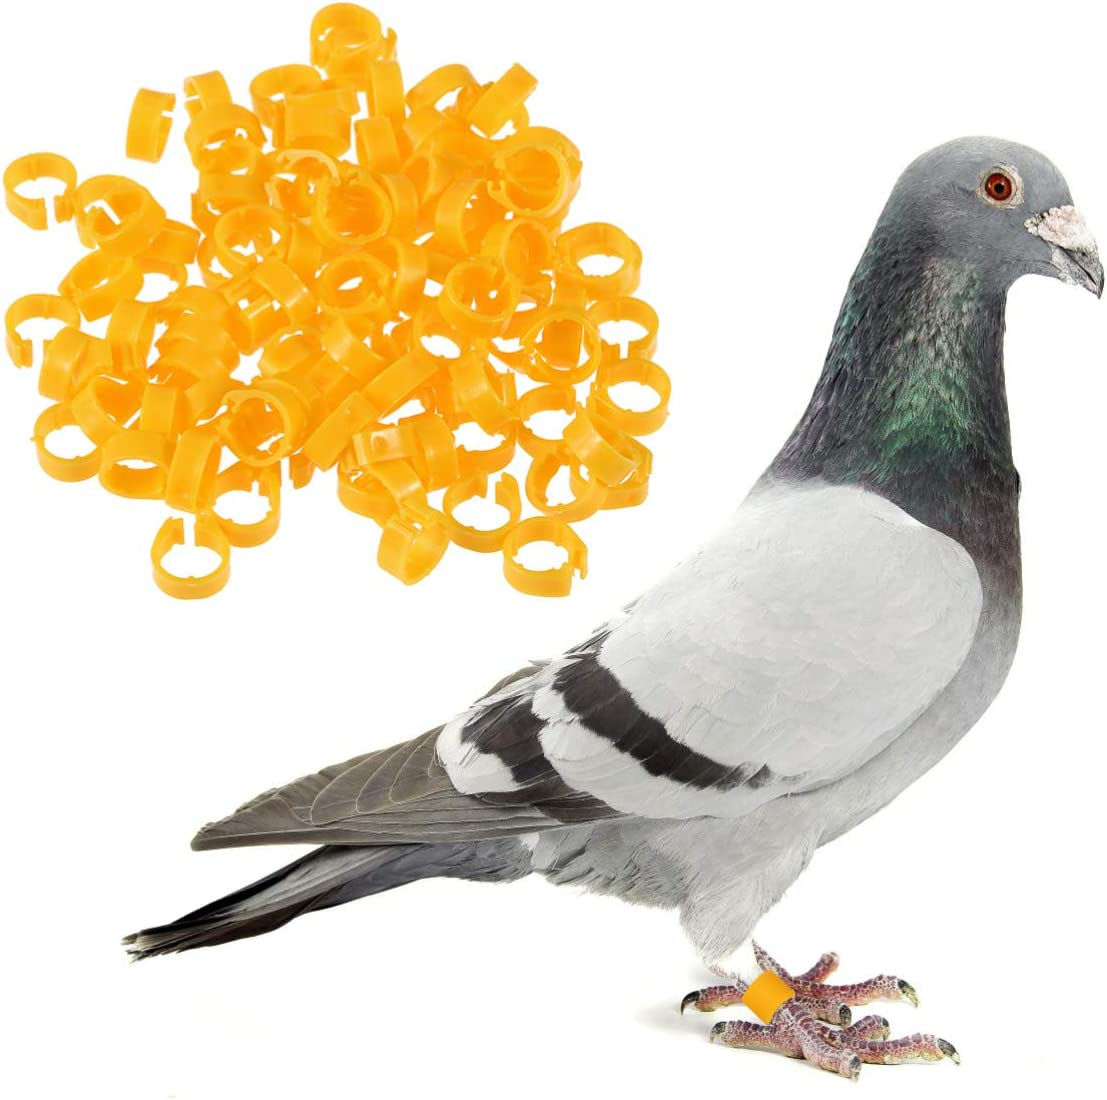 UEETEK 100pcs Plastic Clip On Leg Rings Foot Tag for Pigeons Small Poultry Bantam Chicks